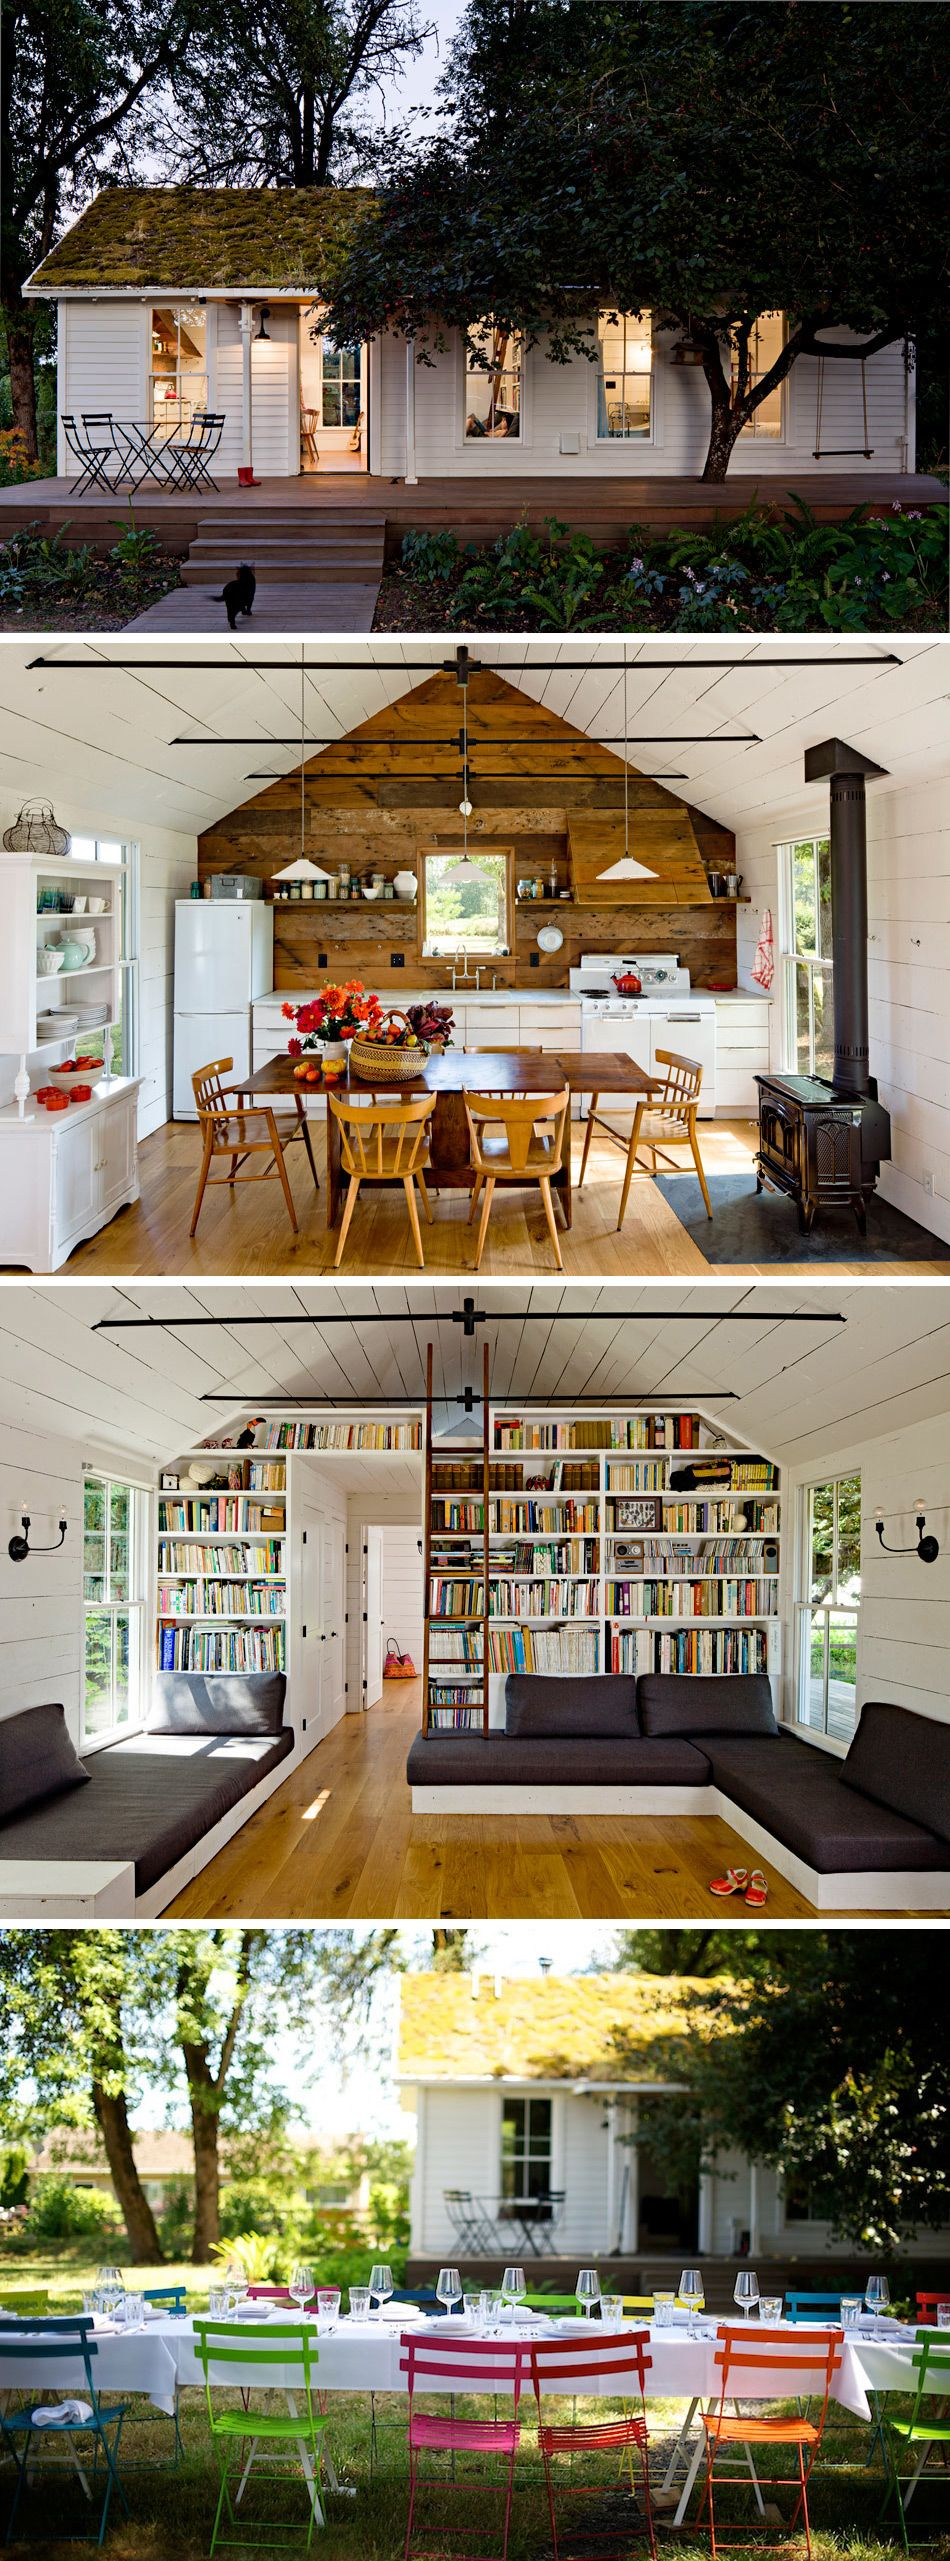 My Favorite Tiny House Approx 550 Sq Feet Just Add